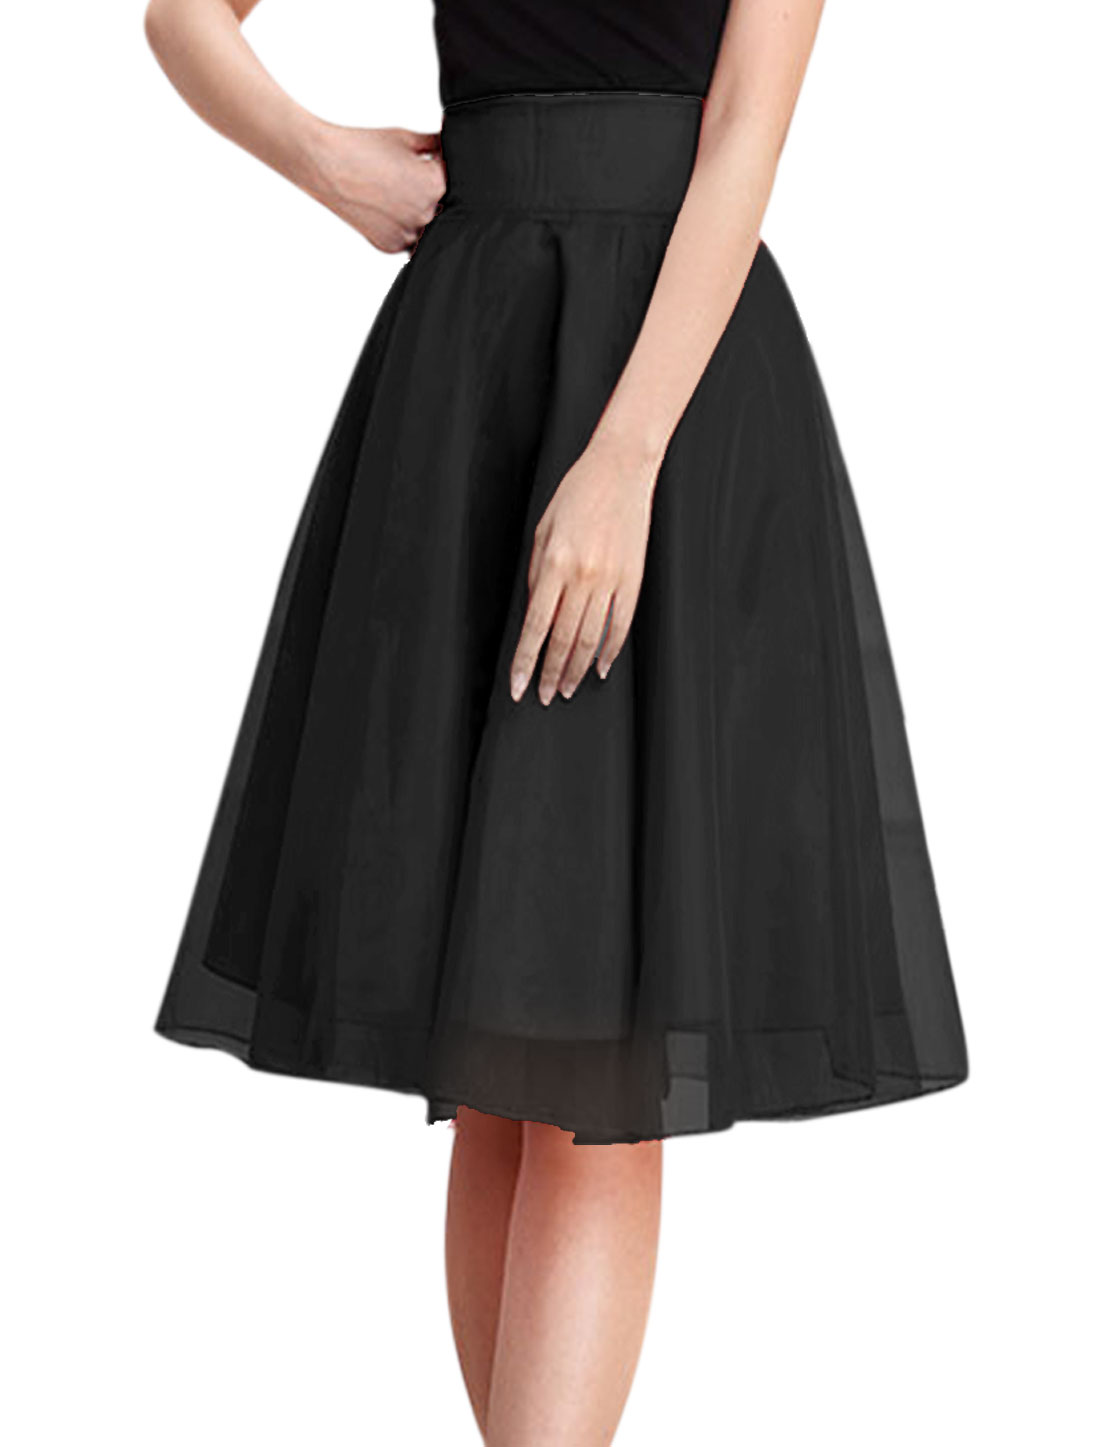 Woman Waist Band Concealed Zipper Fully Lined A Line Organza Skirt Black M